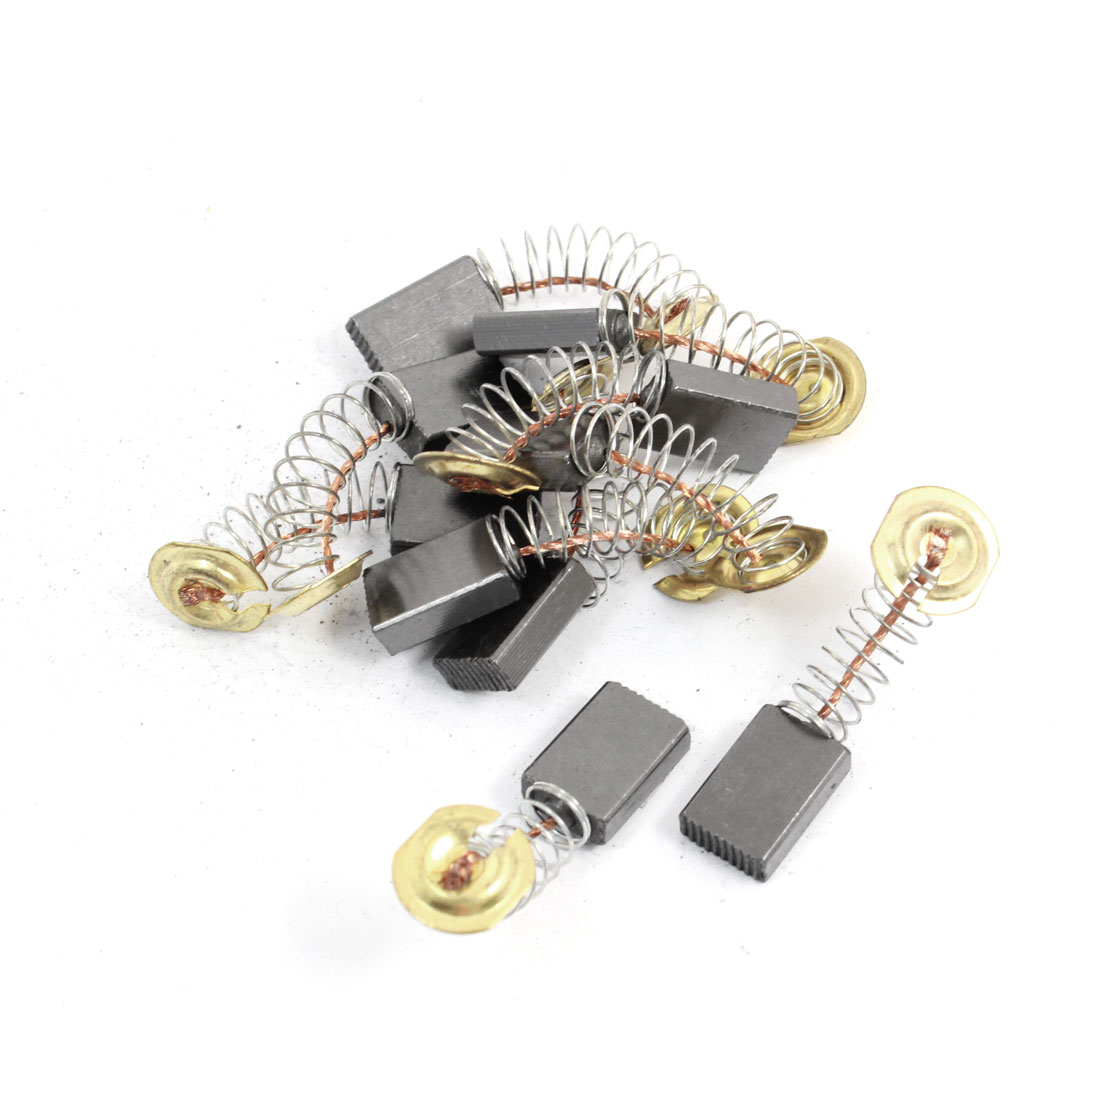 Replacement 17 x 11 x 5mm Carbon Brush for  Electric Motor 10pcs